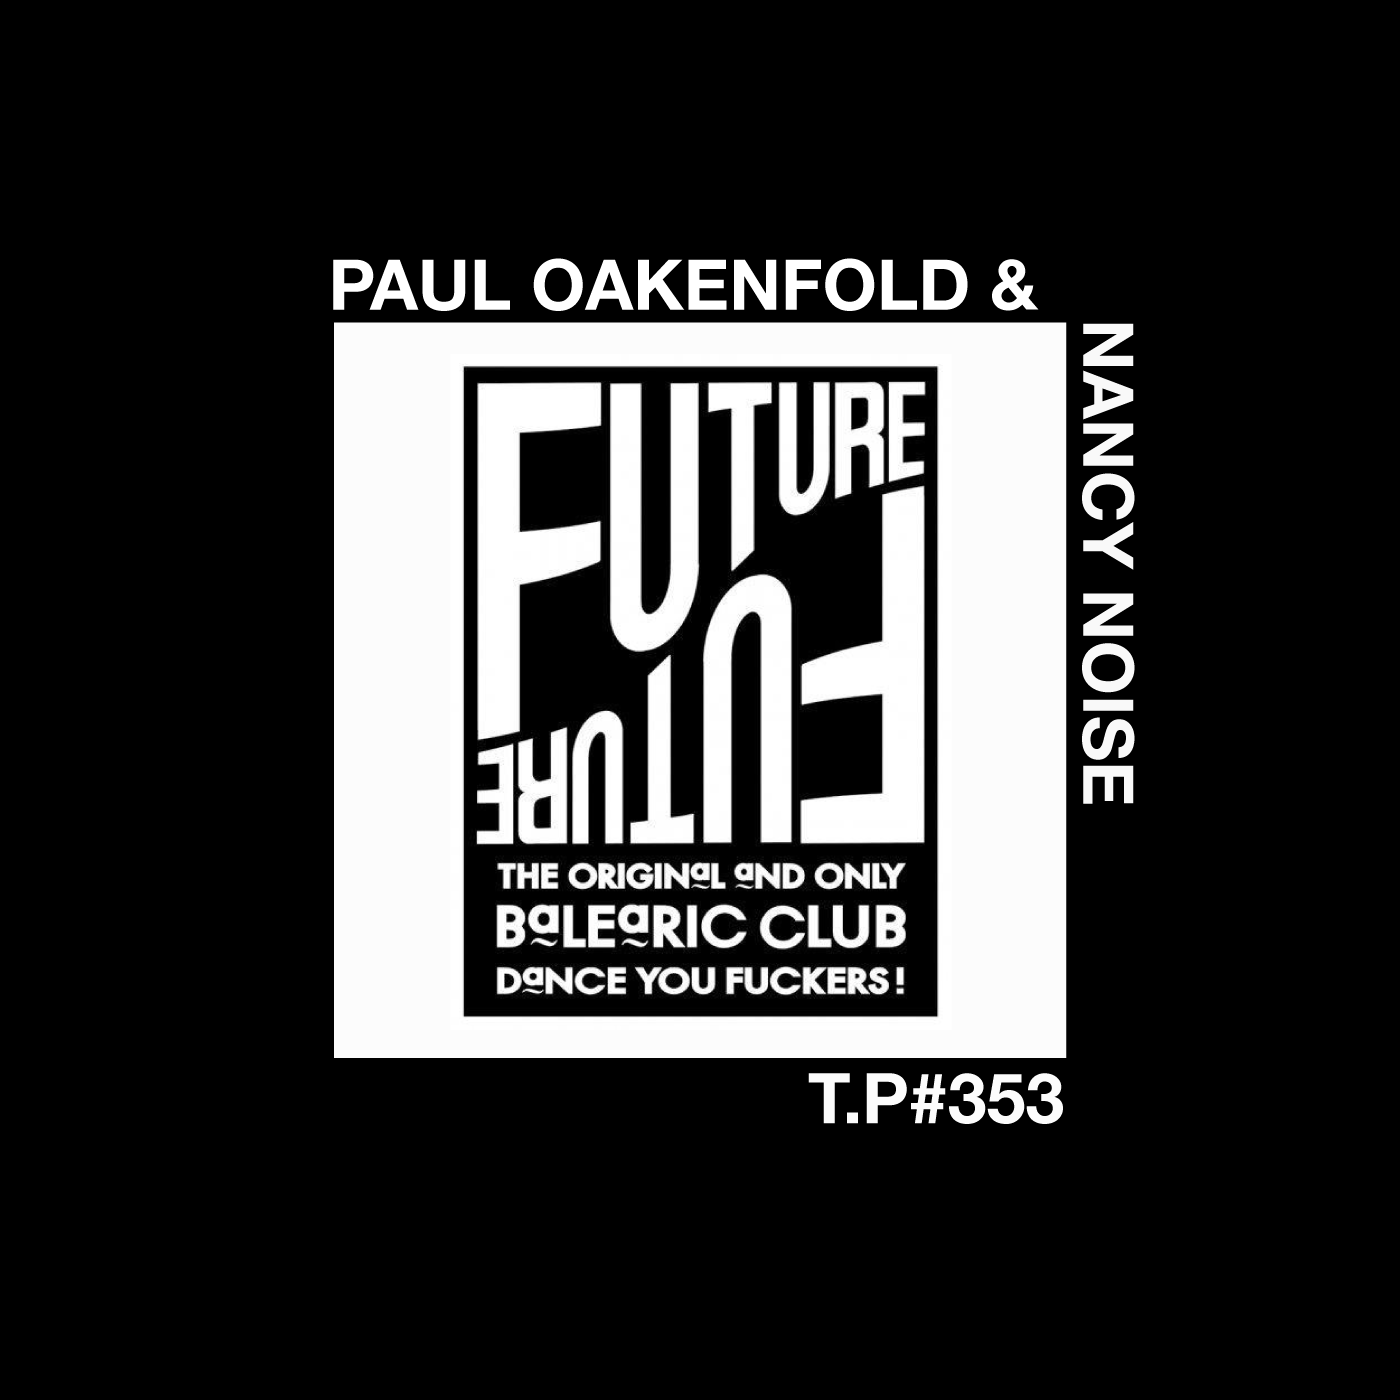 The Future, Nancy Noise, Paul Oakenfold, June, 1988, London, Acid House, Balearic Beat, Classic